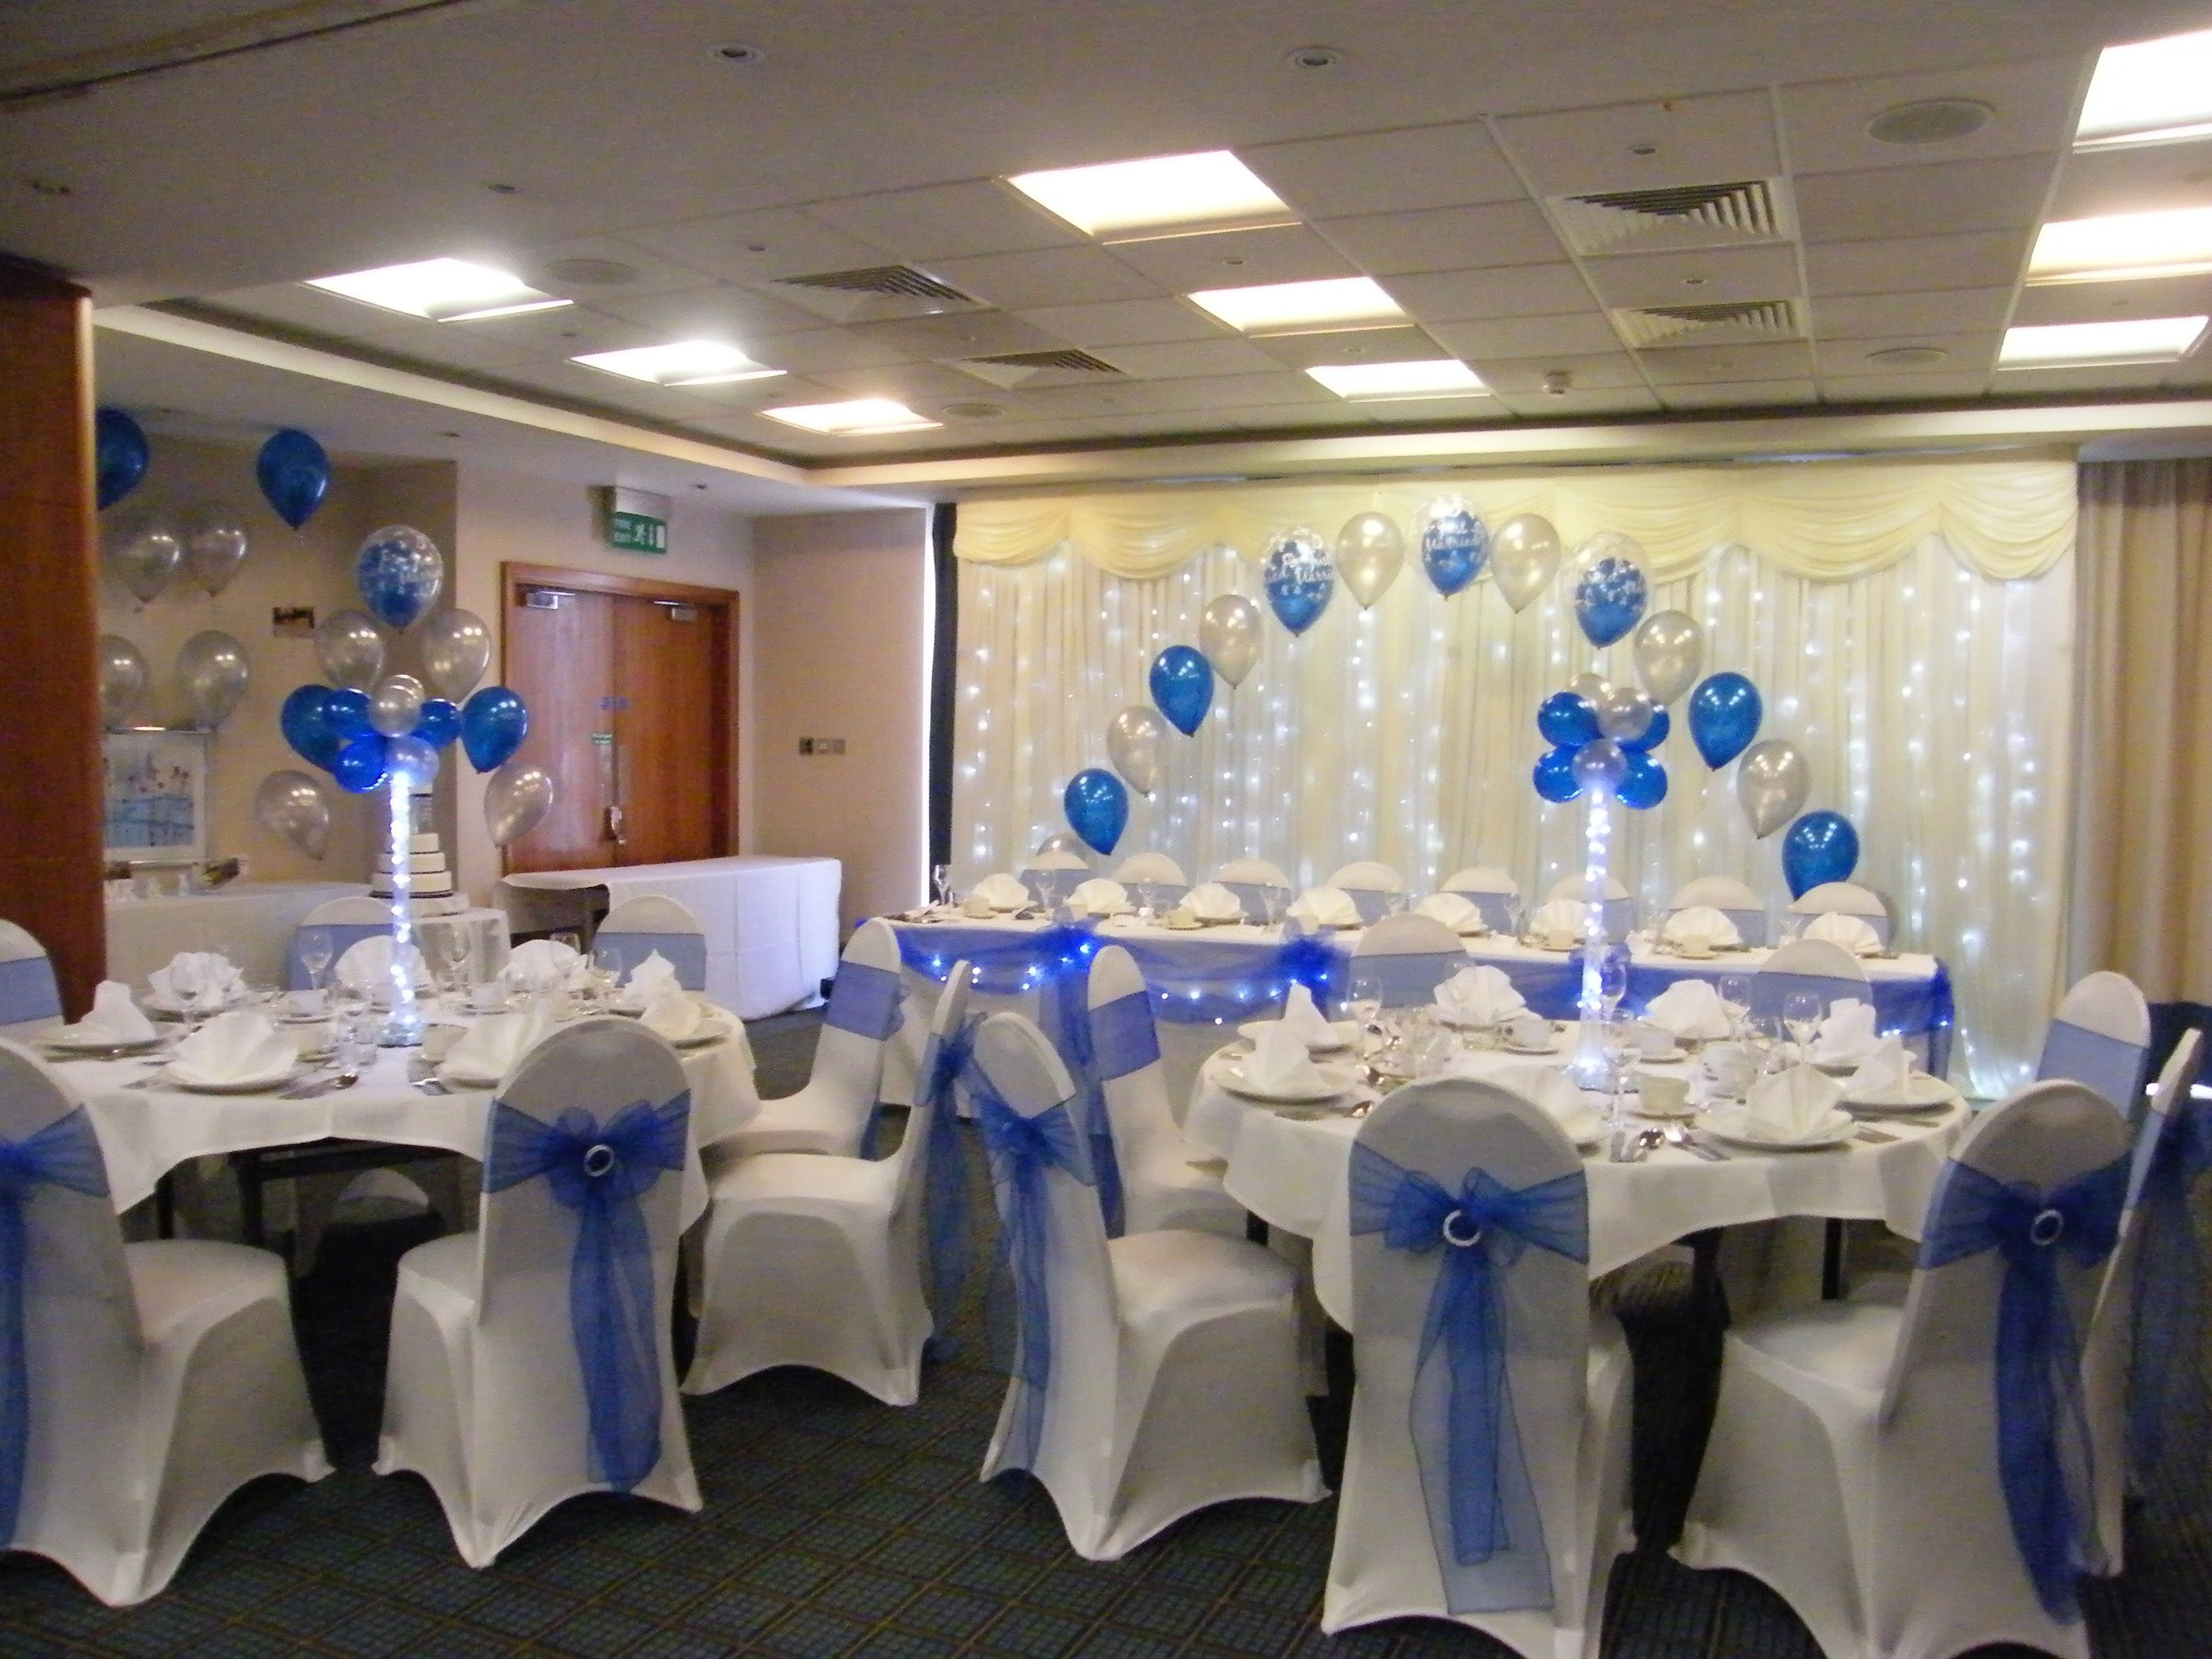 Wedding venue decorations chair covers balloons and table centre